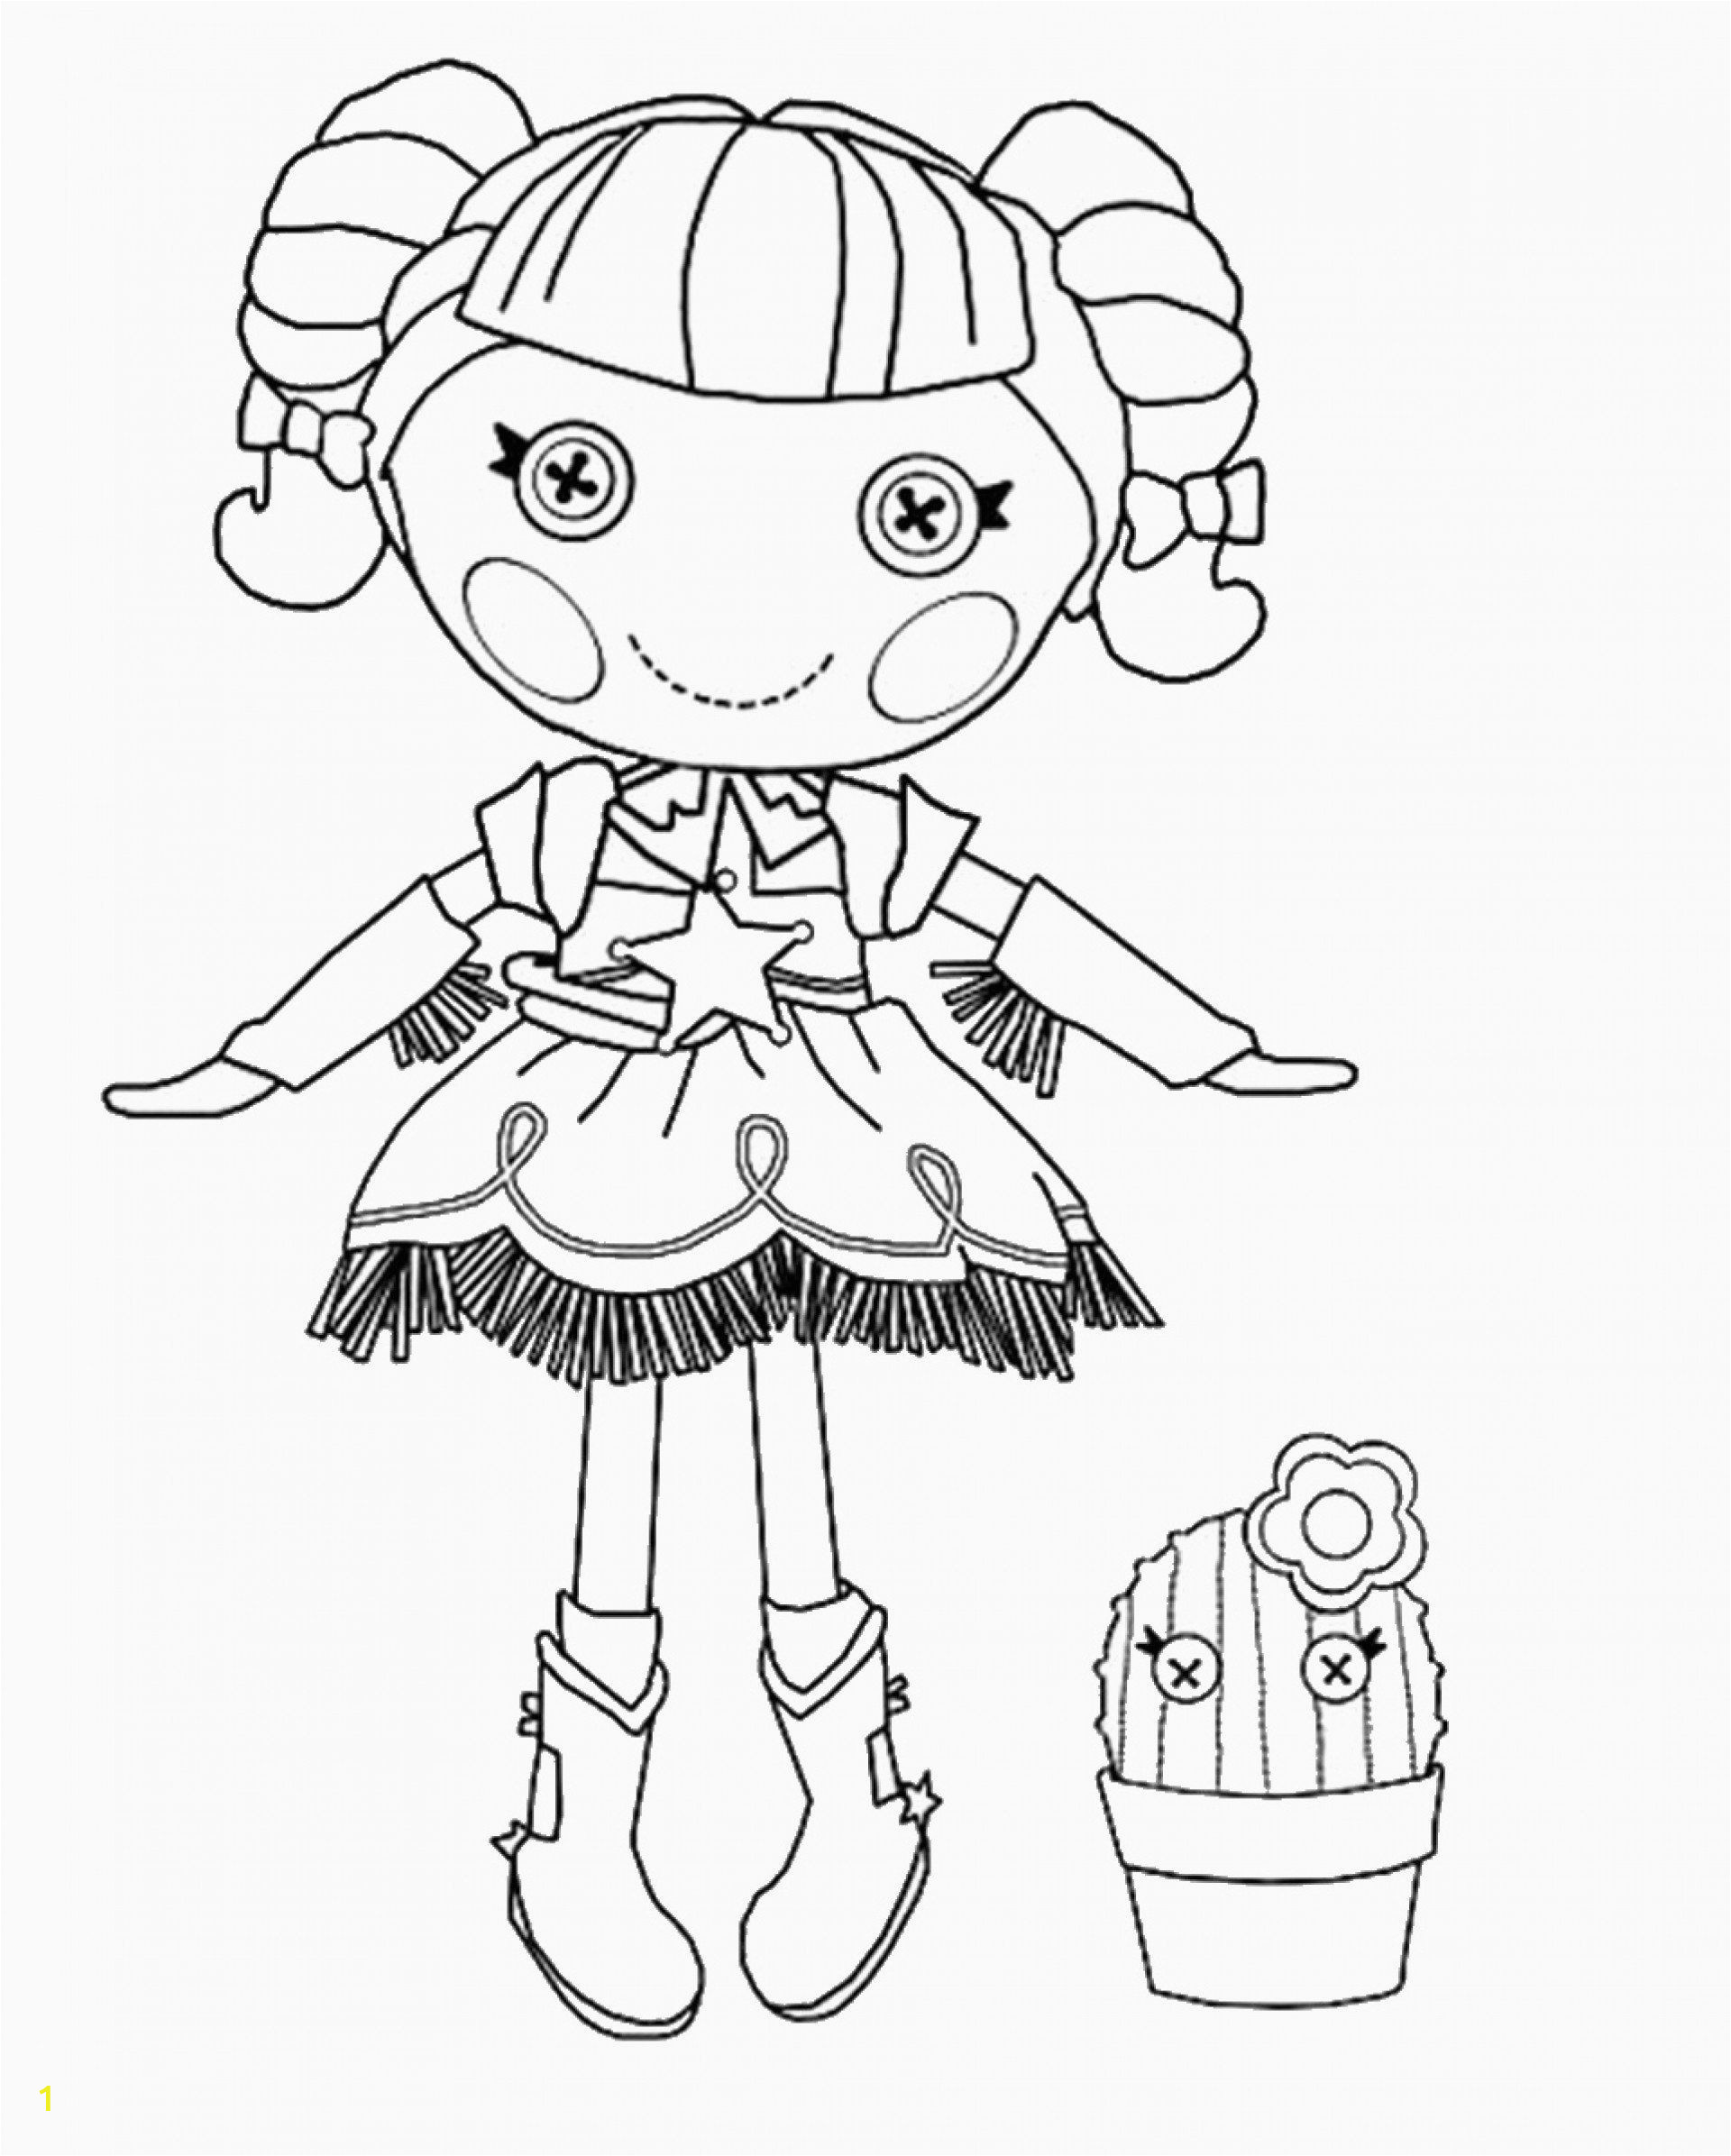 Coloring Pages for Jojo Siwa Jojo Siwa Coloring Pages Elegant 012 Printable Word Free